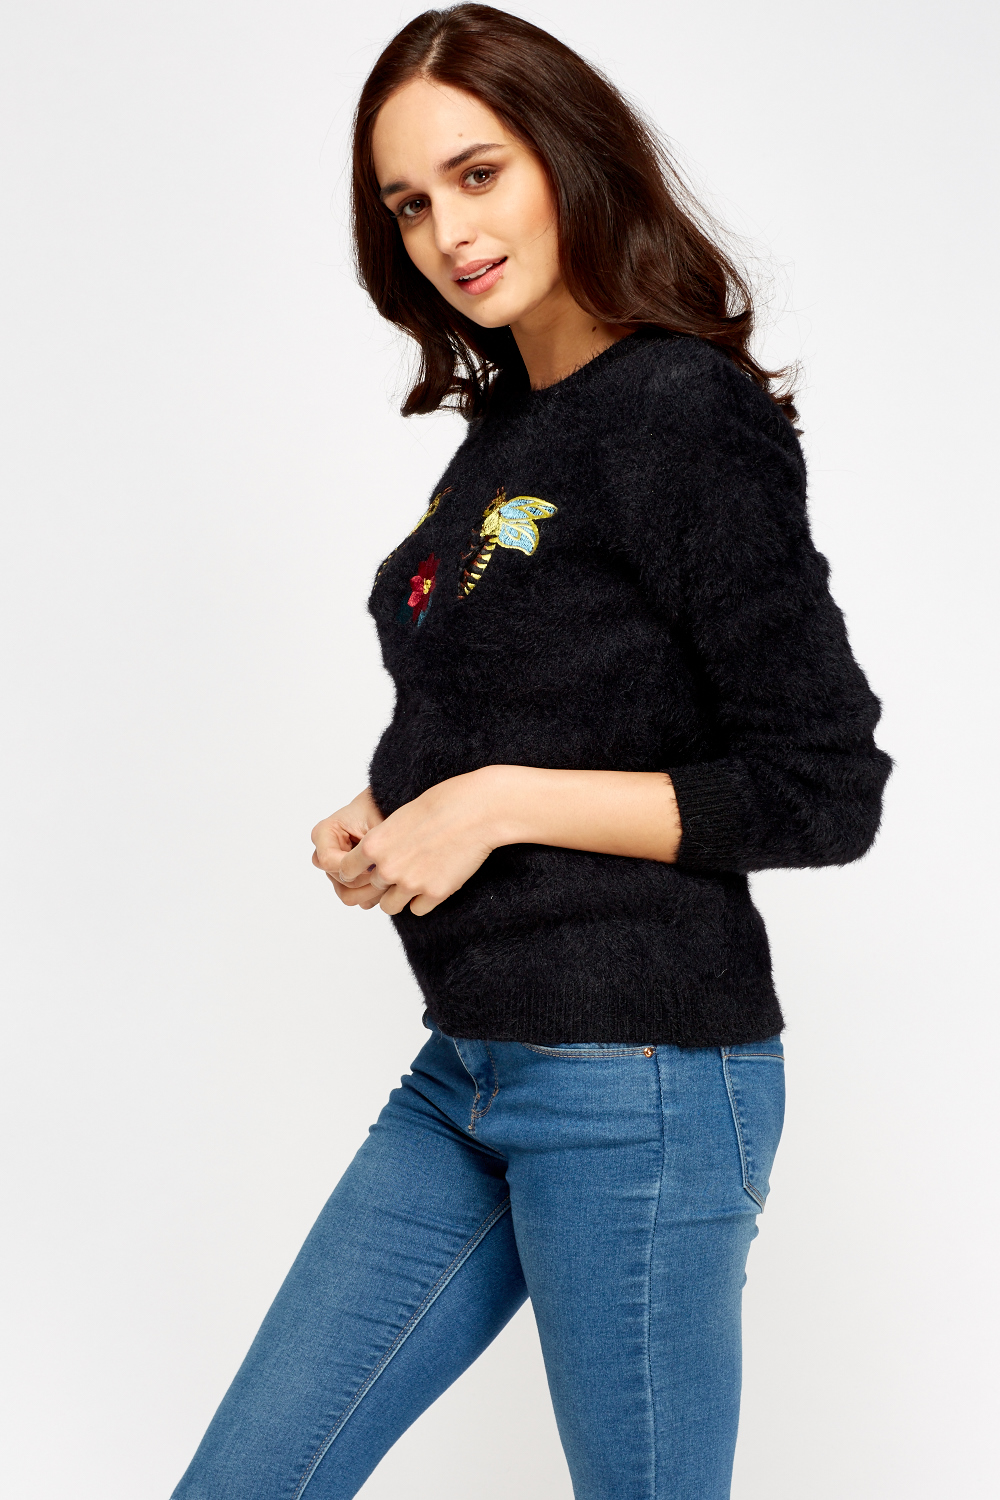 Embroidered Bumble Bee Eyelash Jumper Just 163 5